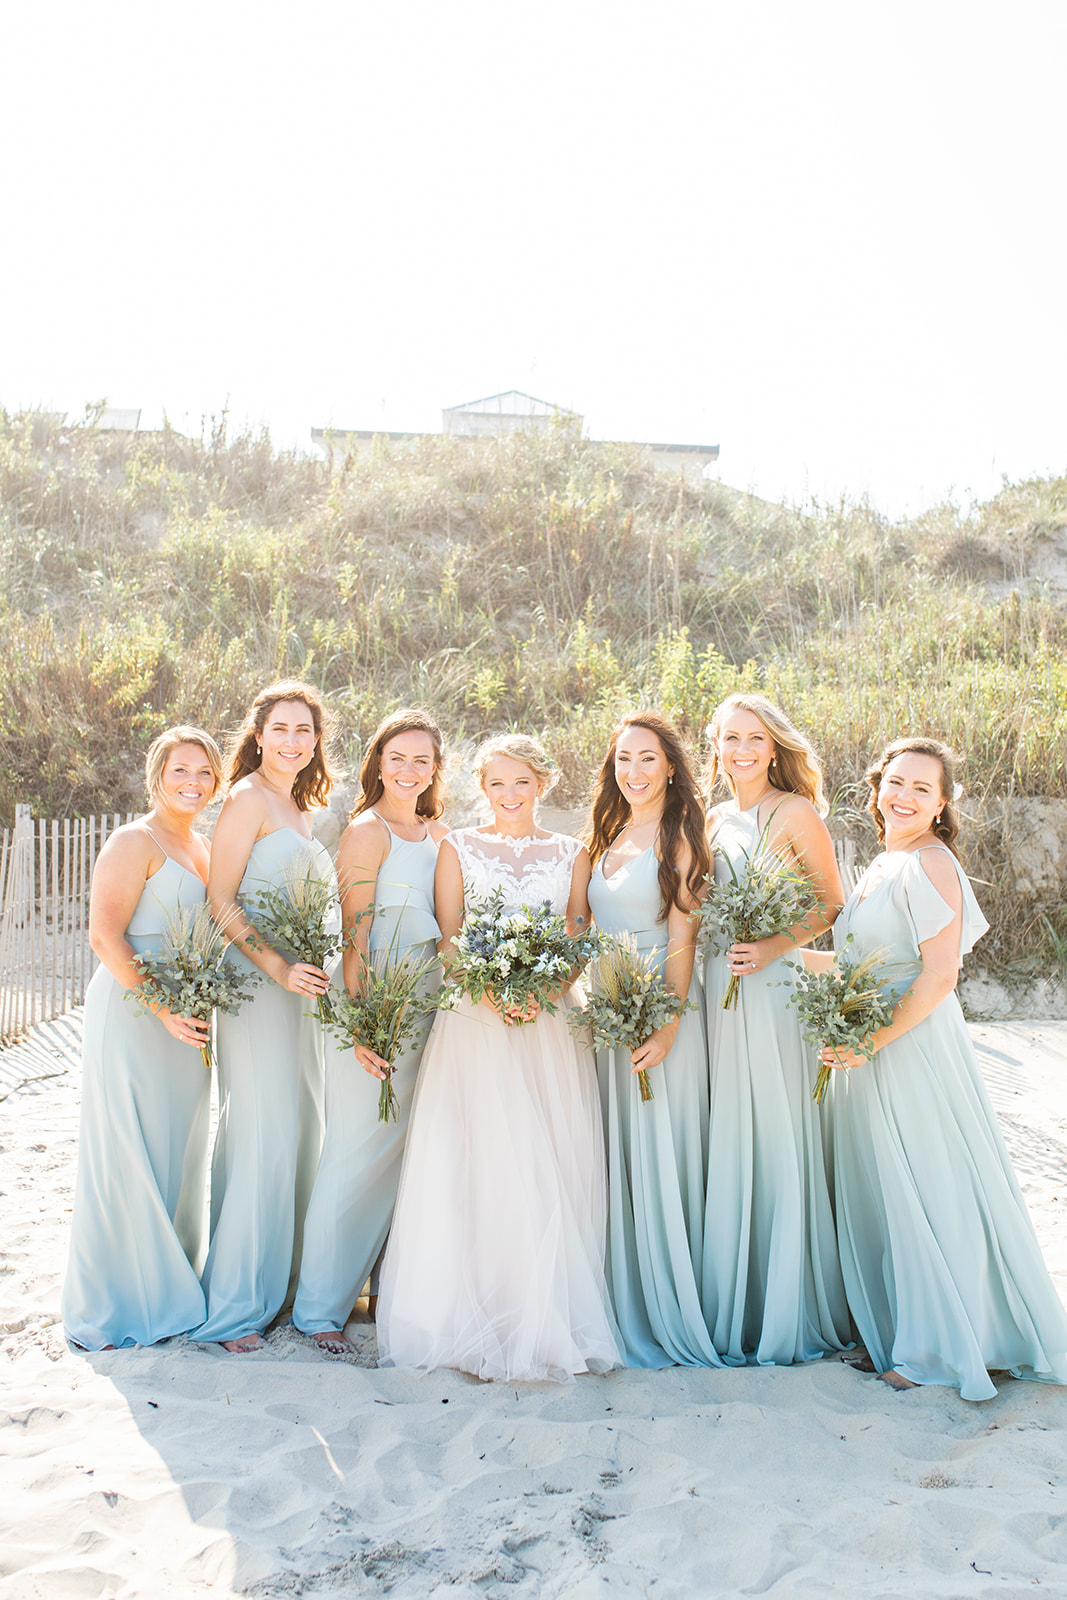 Bailey  Treys Boho Beach Wedding - Image Property of www.j-dphoto.com